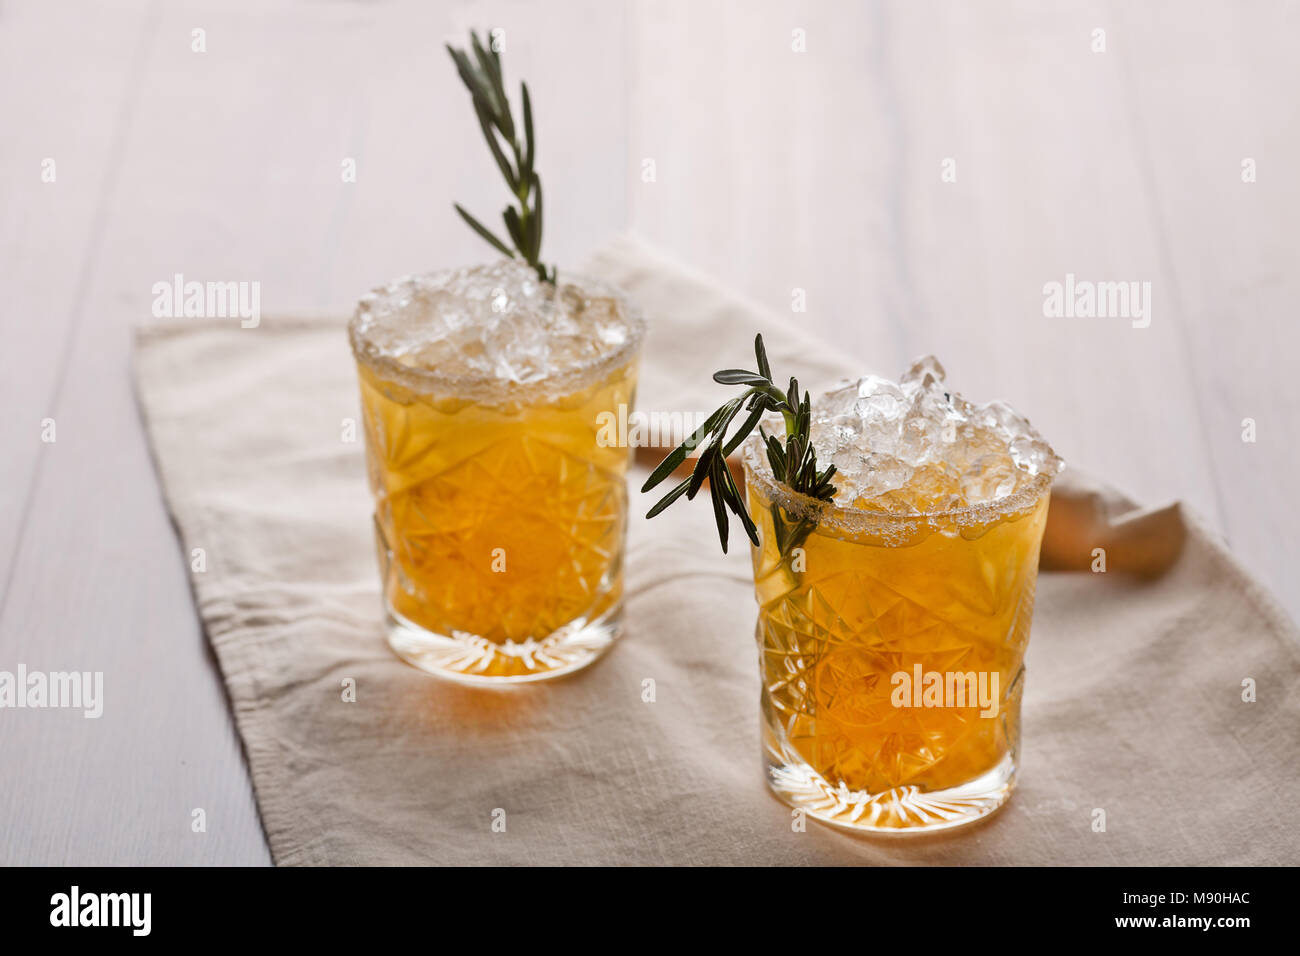 Chilled drink with a branch and ice - Stock Image